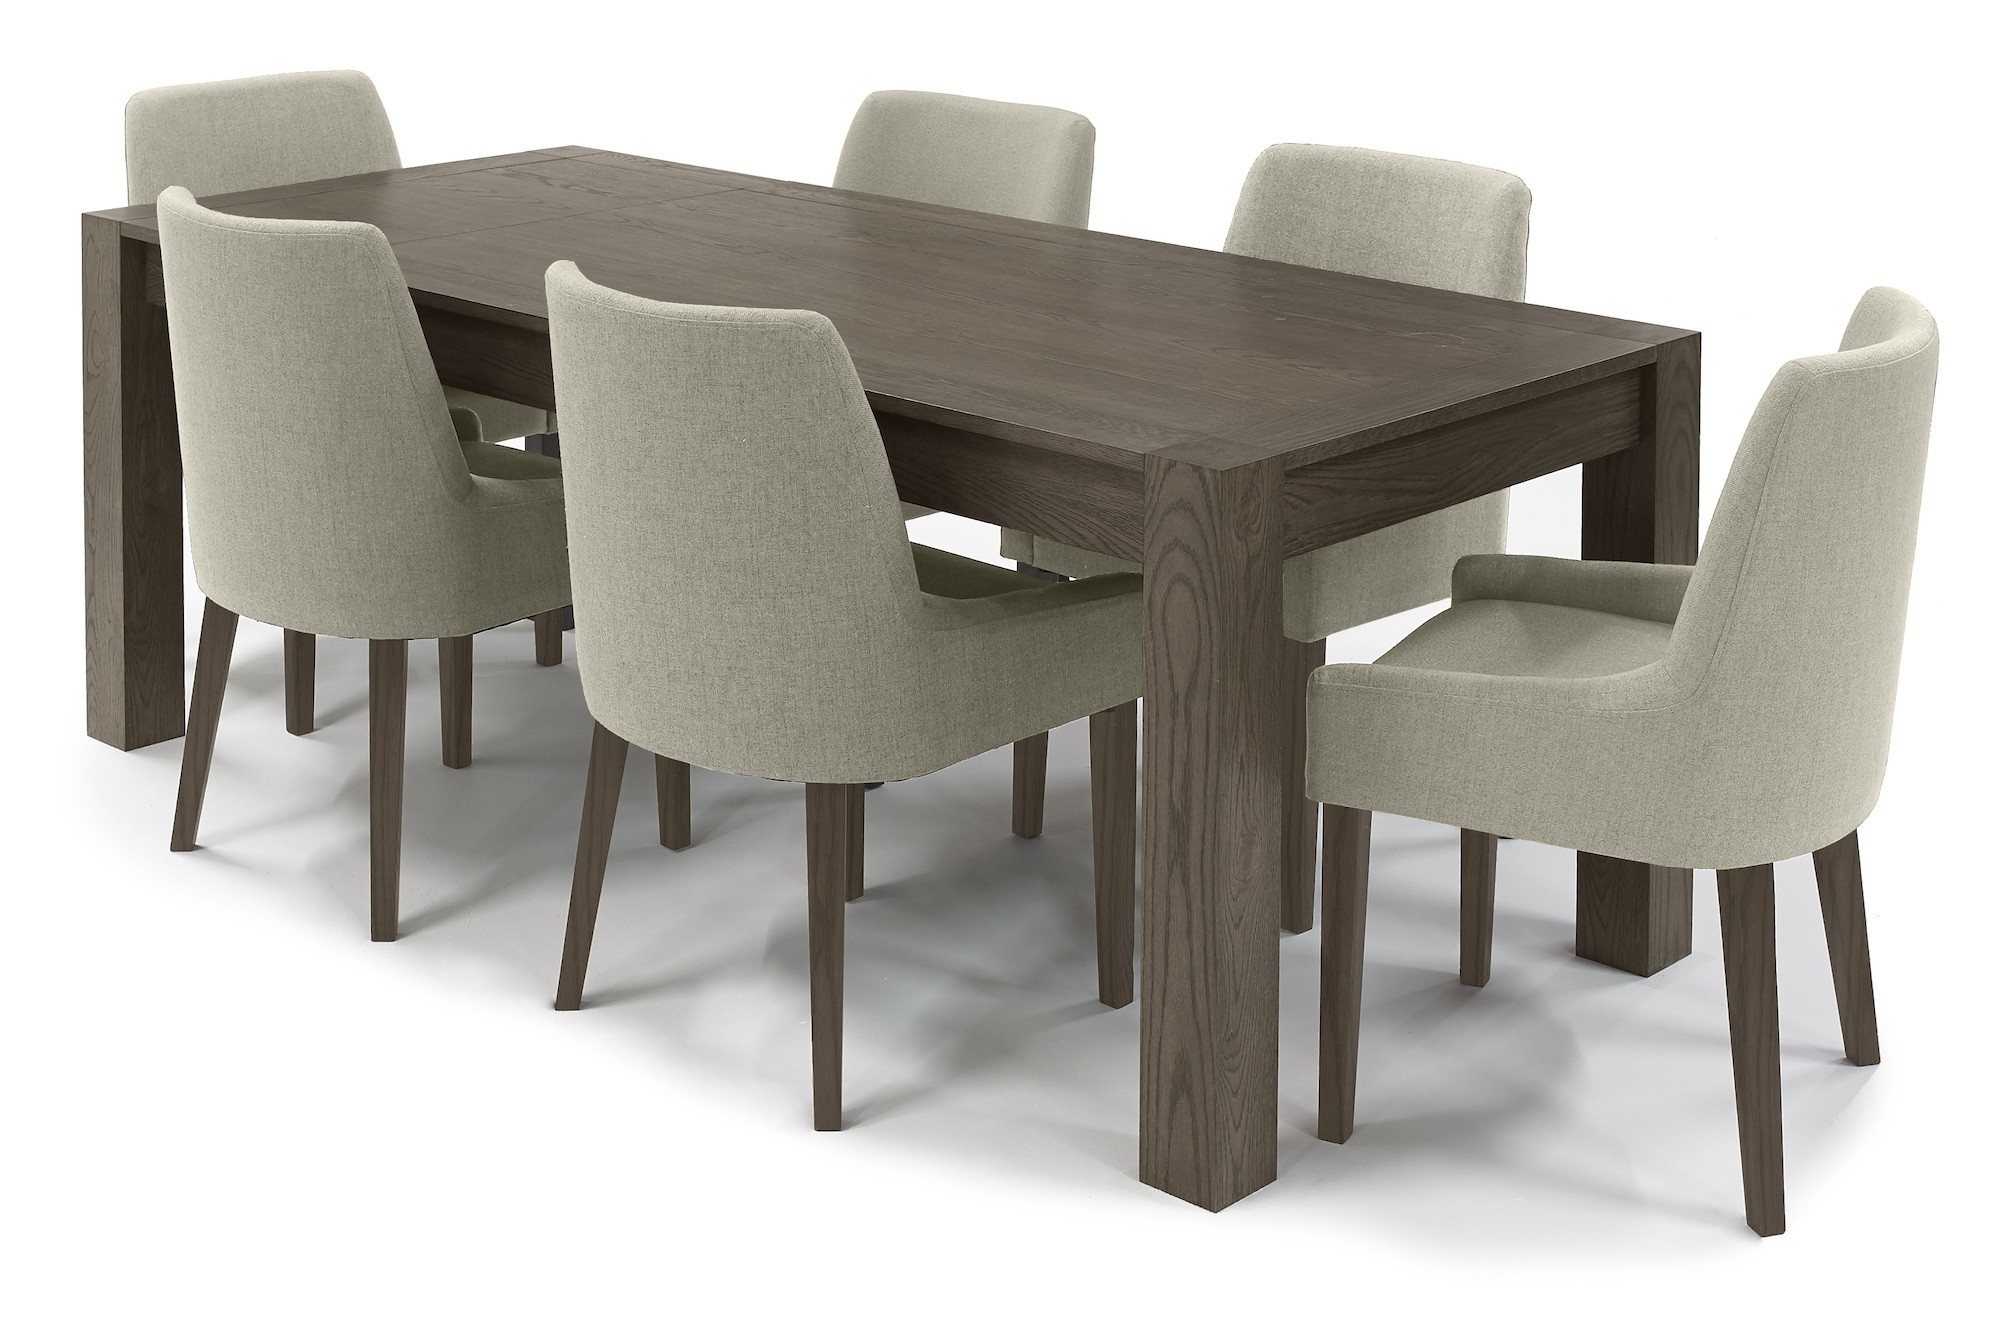 Turin Dark Oak Dining Table Medium 4 6 Seater End Extension Dining With Regard To Latest Dark Dining Room Tables (View 22 of 25)